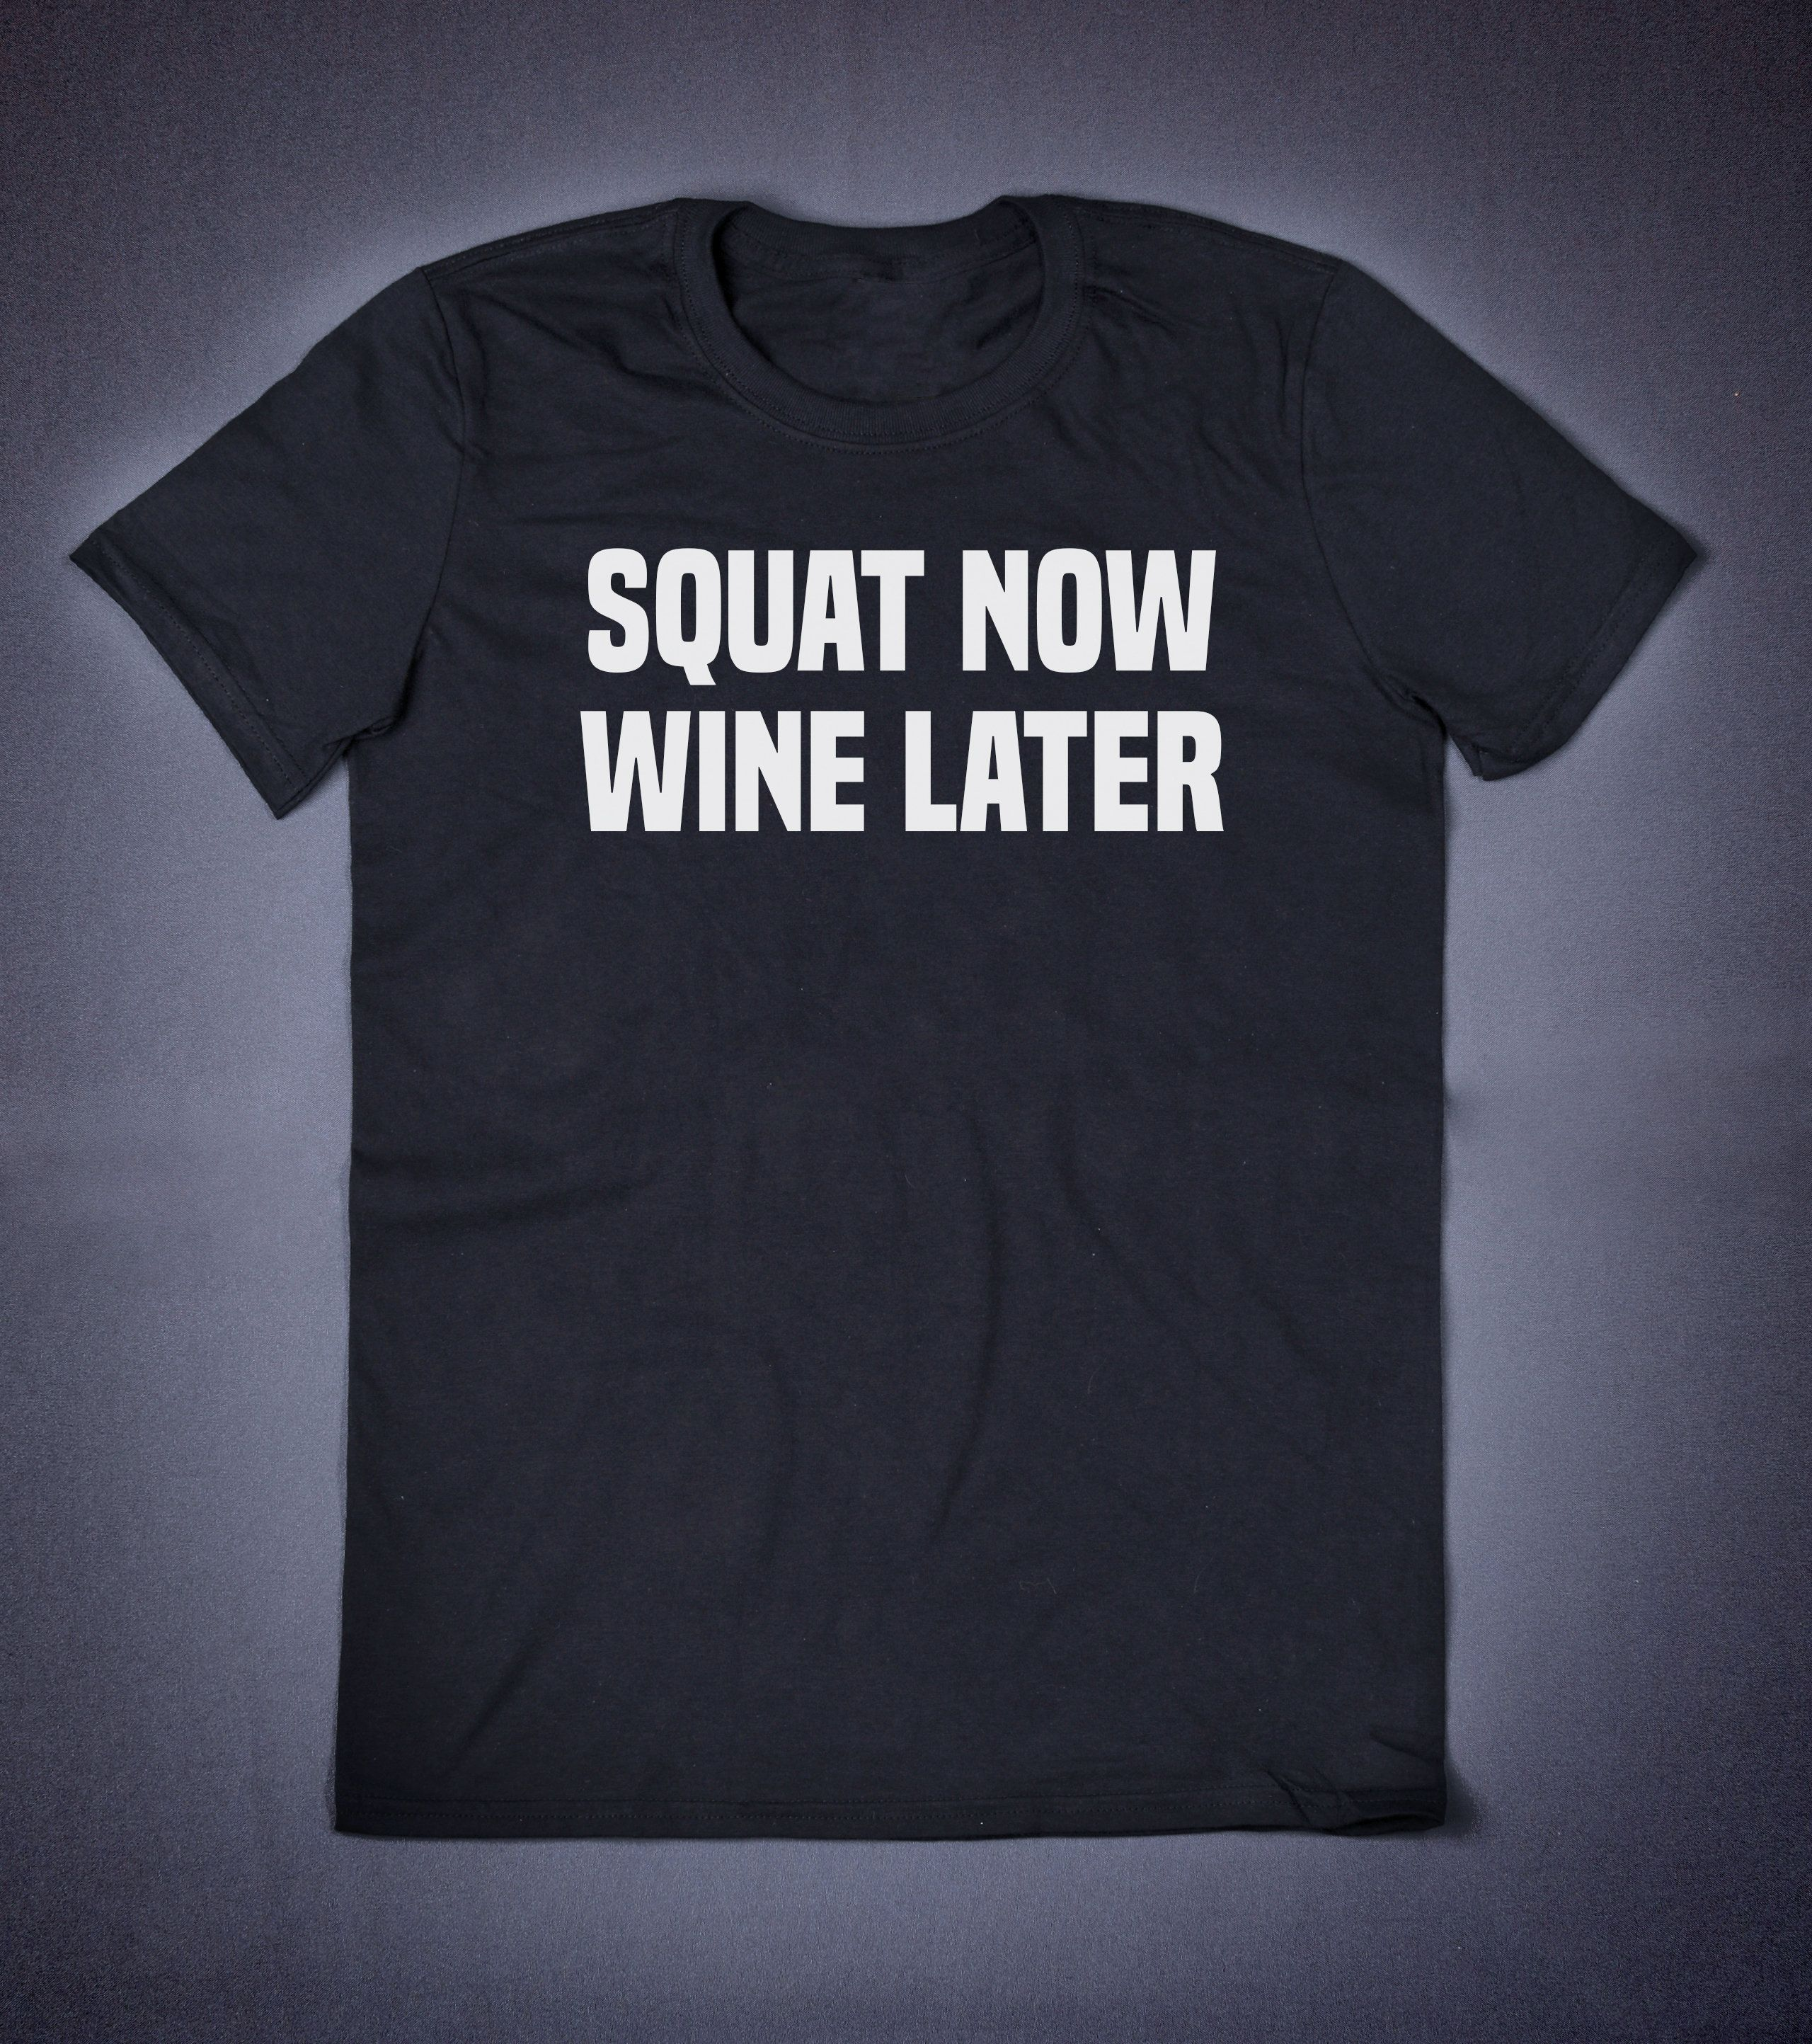 Squat Now Wine Later Workout Shirt, Funny Tshirt, Unisext Shirt, Fitness Top, Gym Top, Sports TShirt, Fitness Apparel, Slogan Tee is part of Workout Clothes Shirts - Unisex tshirt is 100% cotton  Great for many occasions, when going out to town, hanging out with friends, staying in at home or doing some activity  Comfortable to wear and good looking  Squat Now Wine Later Workout Shirt, Funny Tshirt, Unisext Shirt, Fitness Top, Gym Top, Sports TShirt, Fitness Apparel, Slogan Tee Before placing an order please ensure your selected size is correct by checking bellow in size measure guide  Measure Guide Small  Width  18in (46cm), Lenght  28in (71cm) Medium Width  20in (51cm), Lenght  29in (74cm) Large Width  22in (56cm), Lenght  30in (76cm) XLarge Width  24in (61cm), Lenght  31in (79cm) 2XLarge Width  26in (66cm), Lenght  32in (81cm) (Width from Armpit to Armpit  Length from Collar to Bottom Hem) Shirts are Unisex they can be worn by women and men  Washing and drying instructions  Warm machine wash   Tumble dry normal  Medium heat  Do not Iron  Do not dry clean  Nonchlorine bleach (when needed) I aim to offer the most natural materials in clothing  Shop's cotton tshirts are with seamless twin needle collar, taped neck, and shoulders that are rolled forward  Twin needle sleeves and bottom hem makes shirt stronger from wear and tear  In order to eliminate center crease is quarterturned  All this makes my tees look great on you, feel nice, and comfortable to wear  To make prints on your desired shirt heat transfer is used  Materials for this job are professional and environmentally friendly!